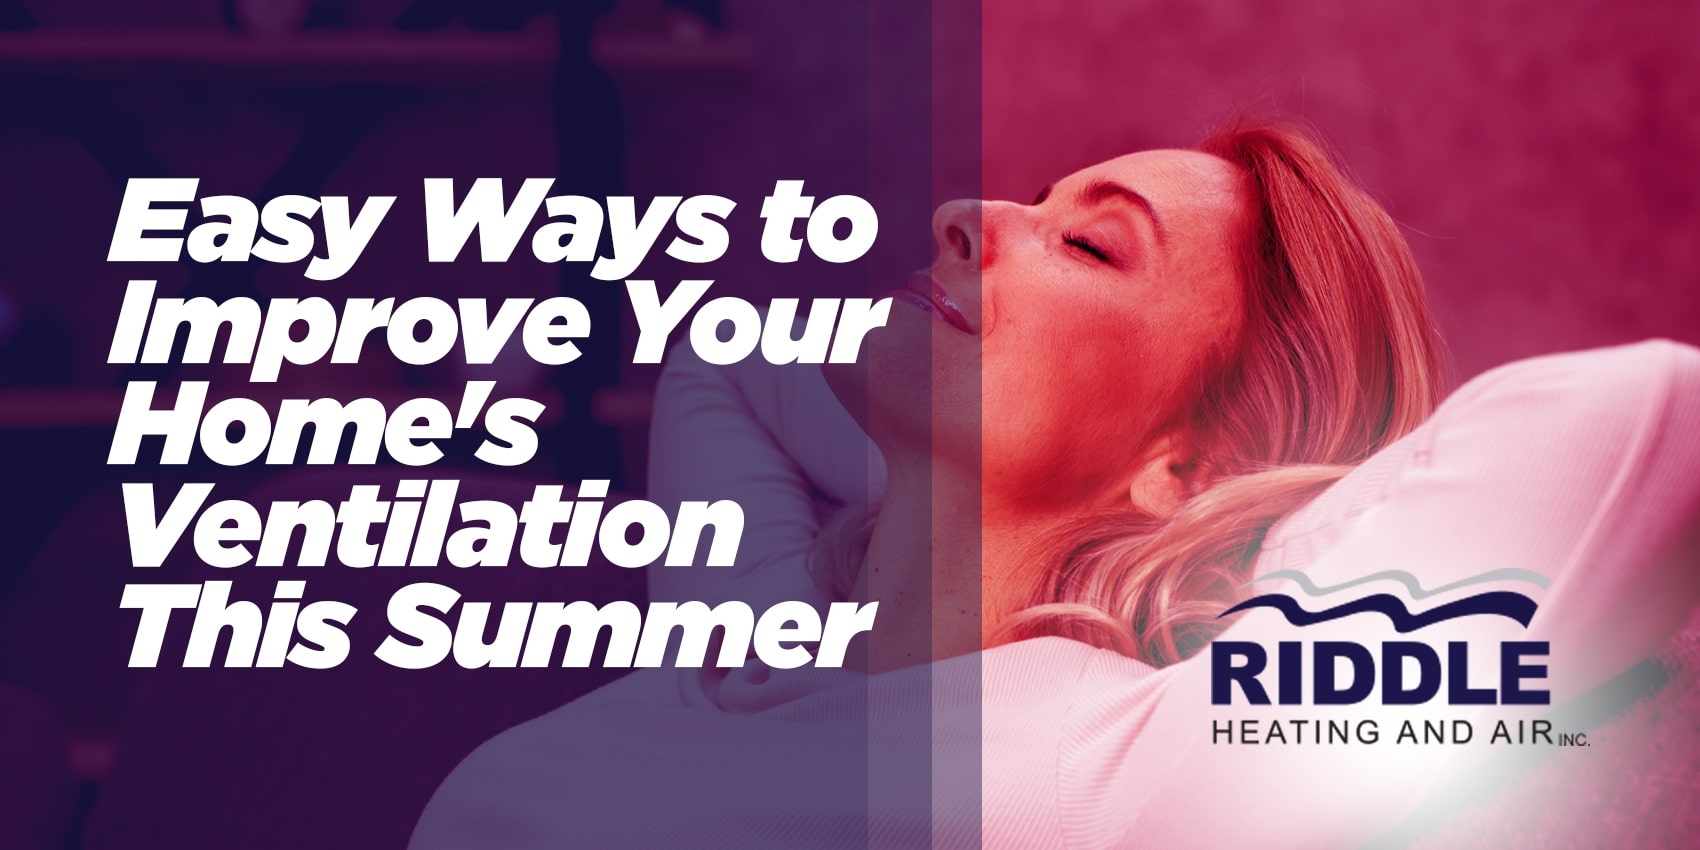 Easy Ways to Improve Your Home's Ventilation This Summer